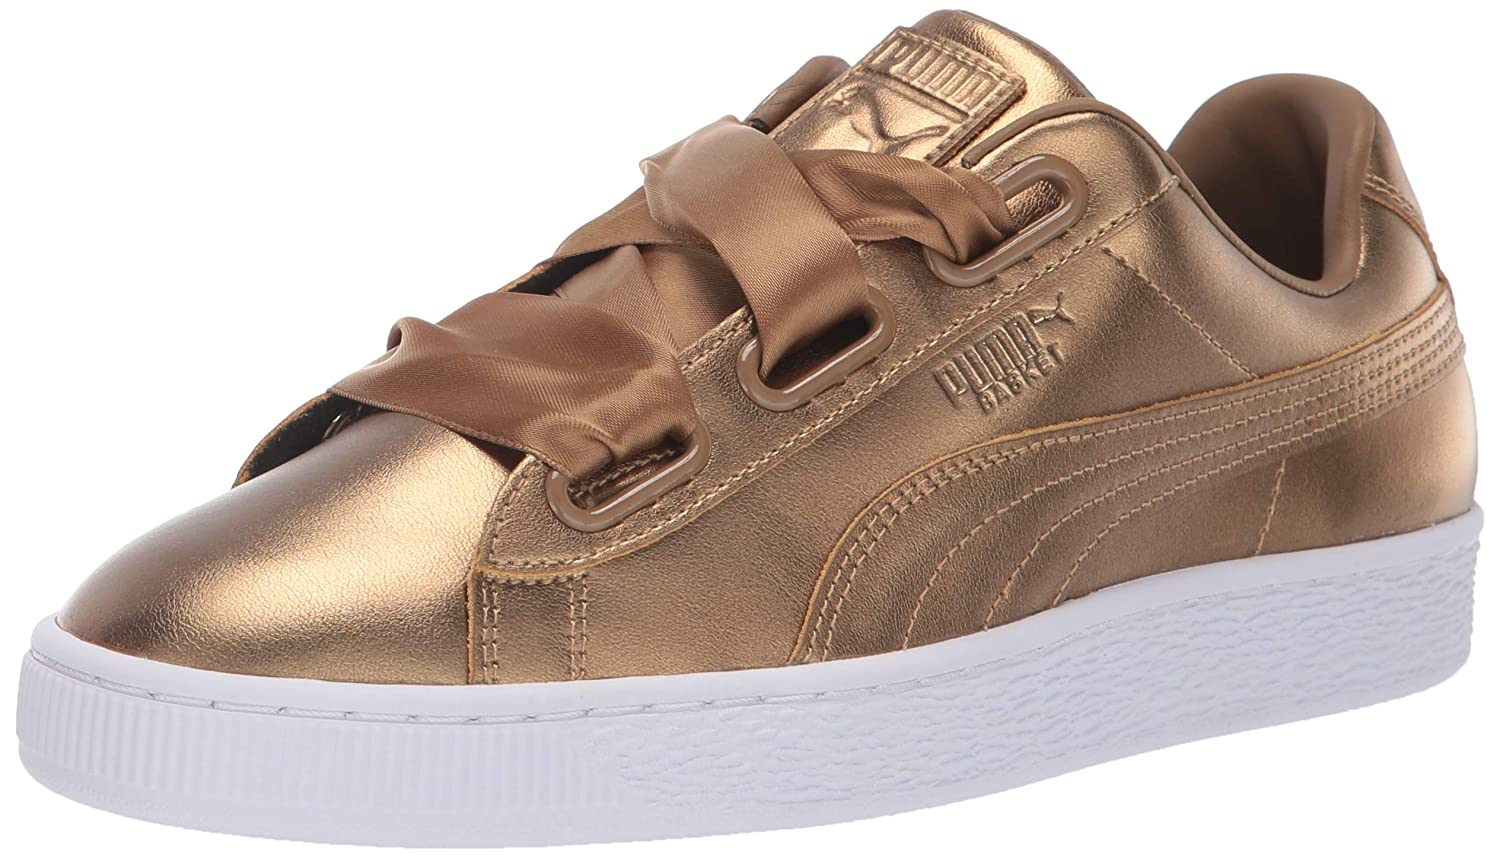 best loved ee6d0 aff93 Puma Basket Heart Luxe WN's, 5 UK, Ermine/Ermine: Amazon.co ...